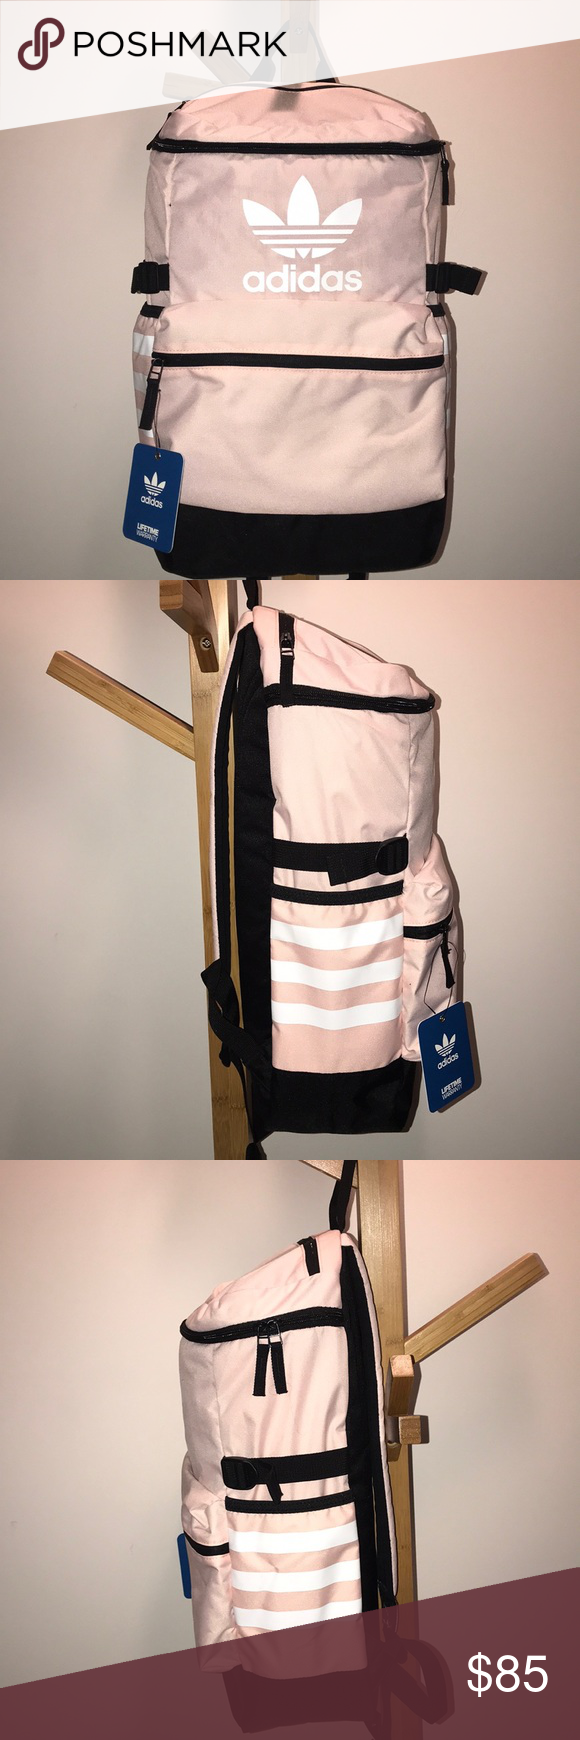 ca9dca0a6b4 NWT Adidas Icey Pink Backpack Pink + Black Adidas Backpack 🎒 -BNWT  attached, never